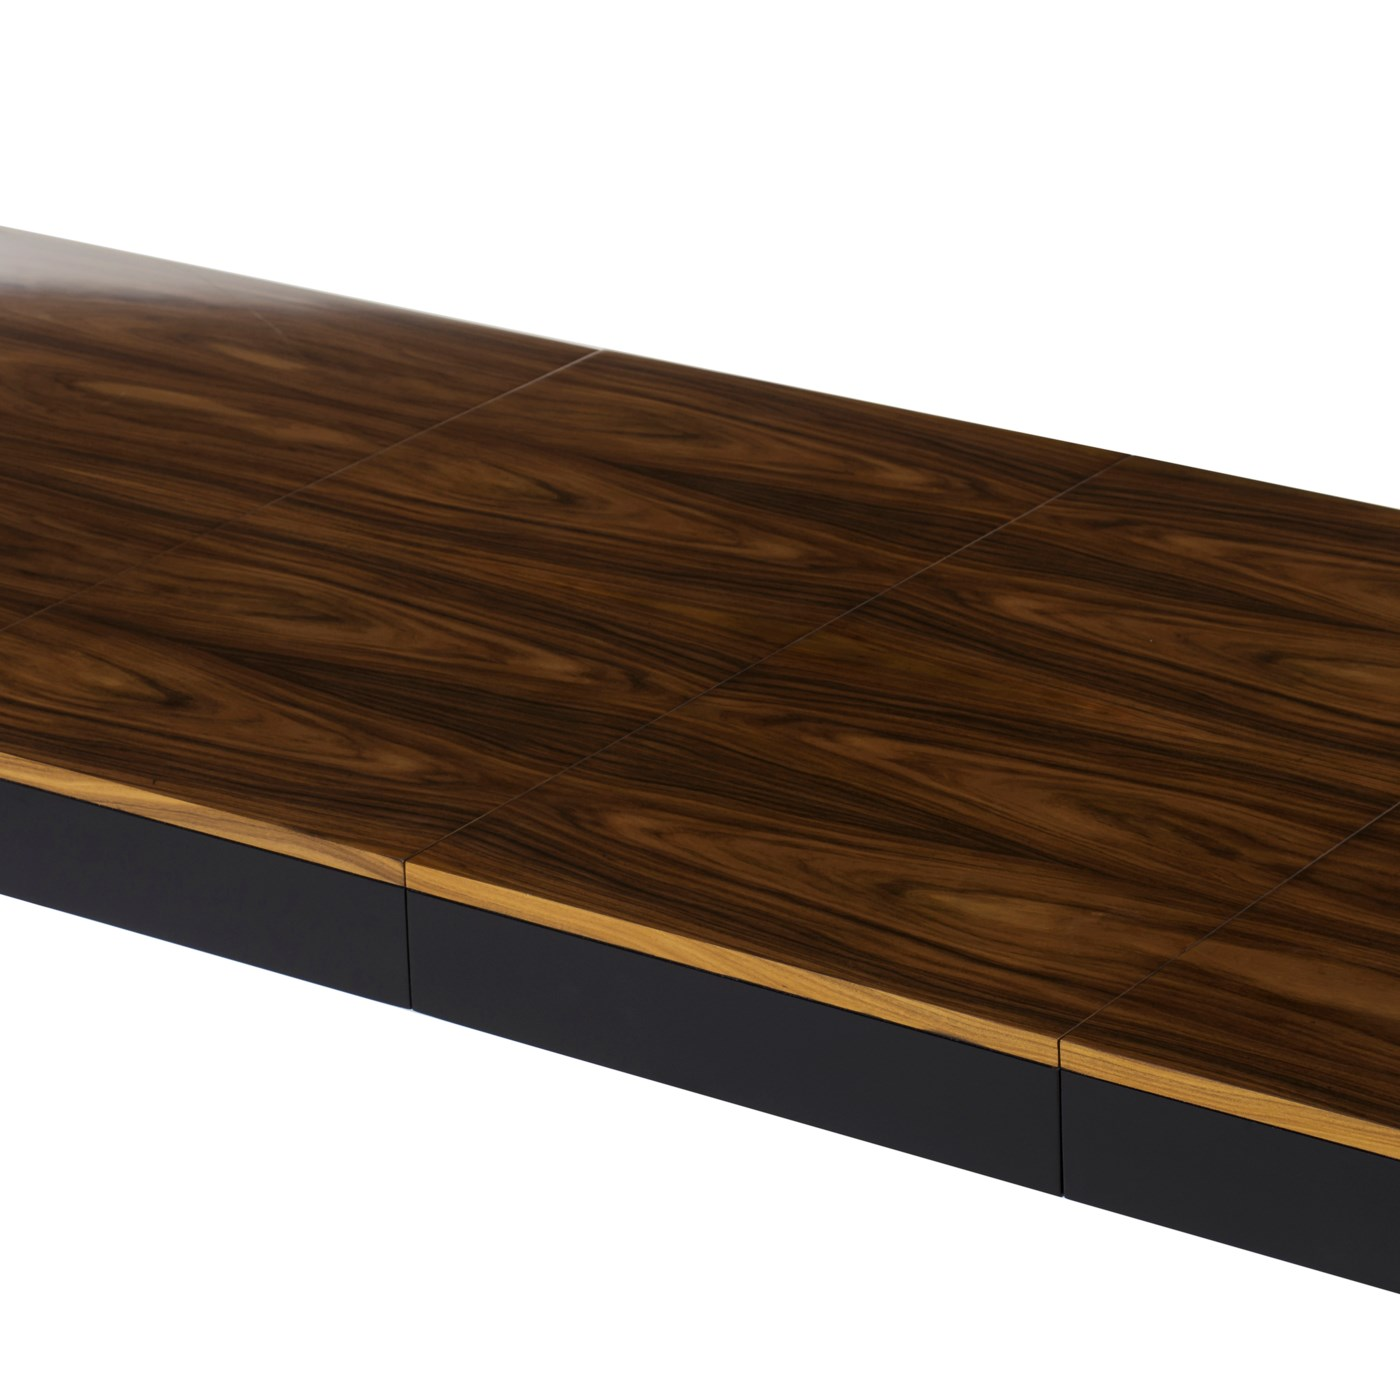 Reform Dining Table - Black & Rosewood